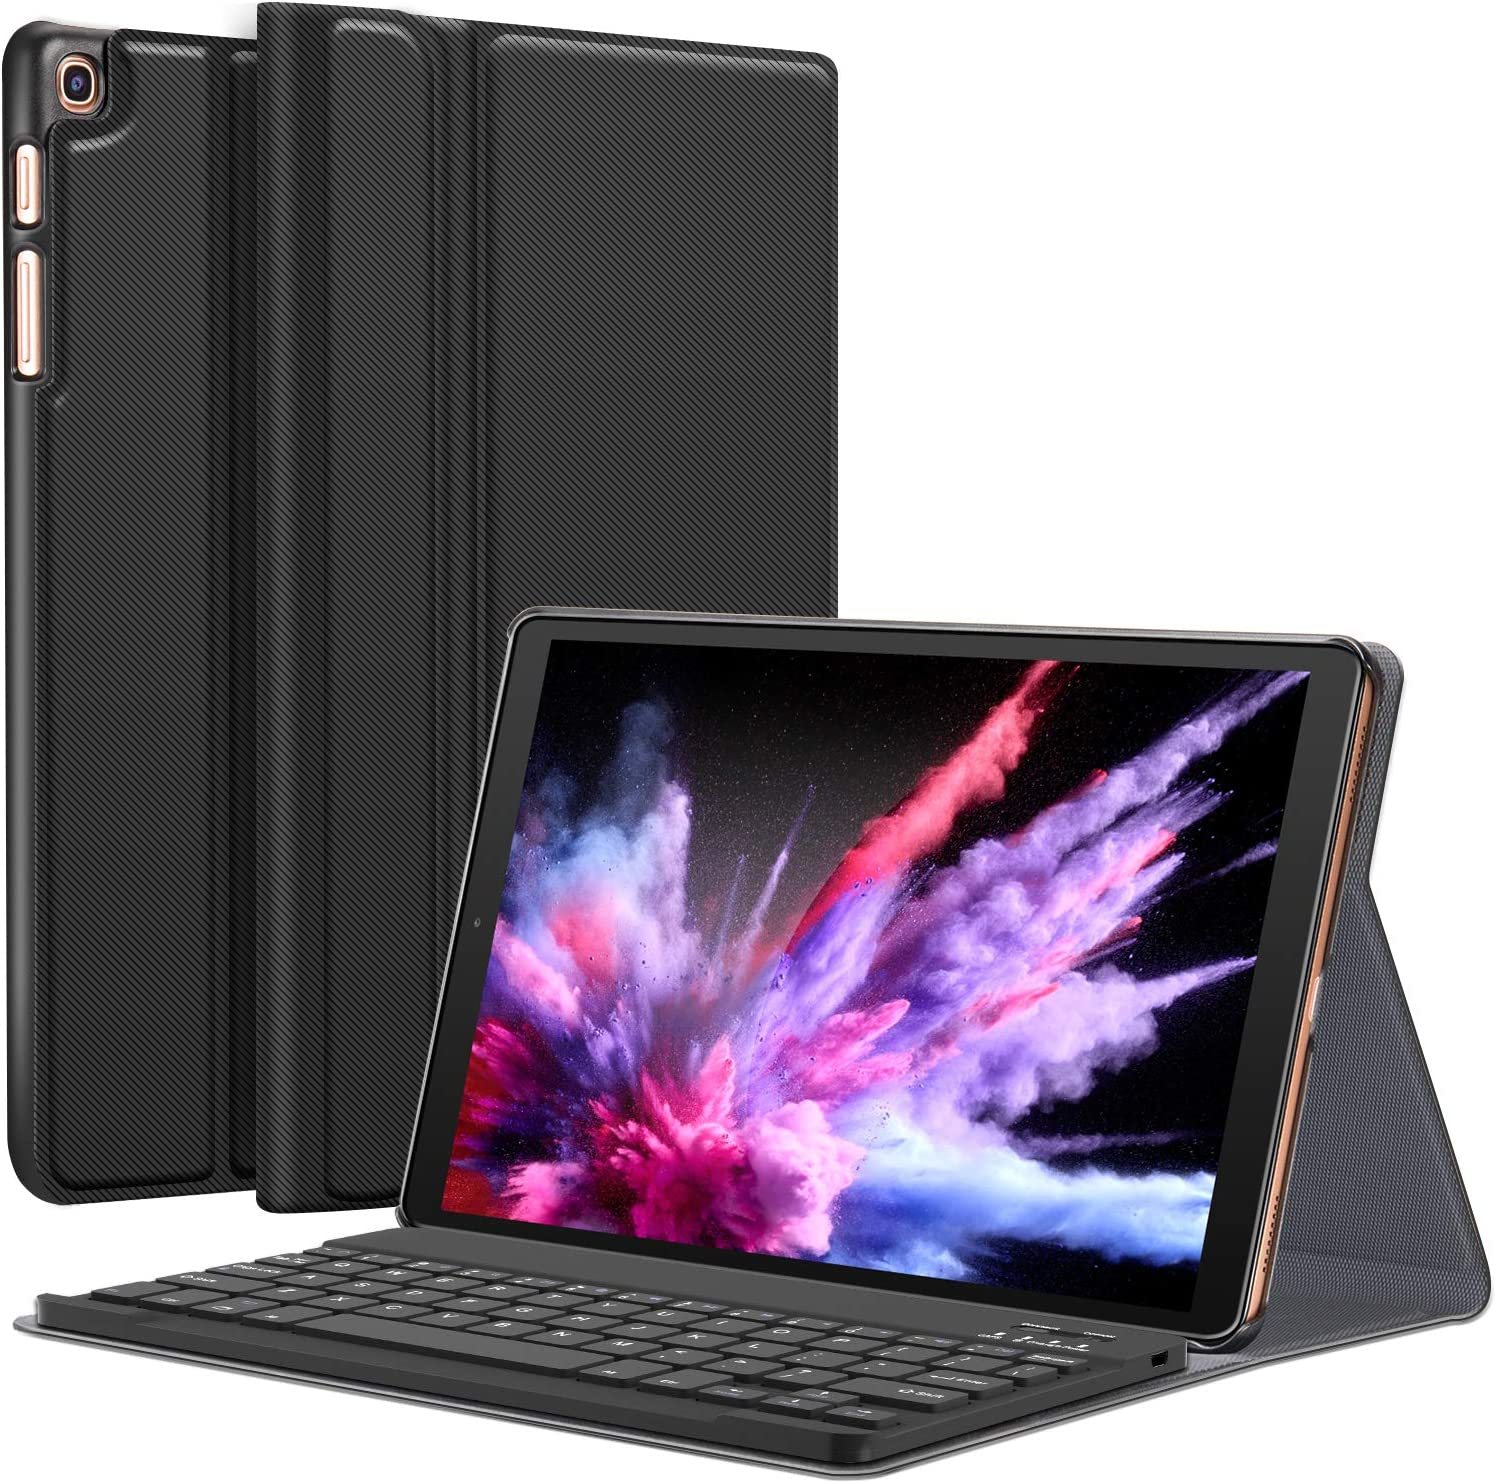 CHESONA Galaxy Tab A 10.1 2019 Case with Keyboard T510 T515 - Folio PU Leather Stand Case - Magnetically Detachable Wireless Keyboard Case for Samsung Galaxy Tab A 10.1 Inch SM-T510 SM-T515 2019